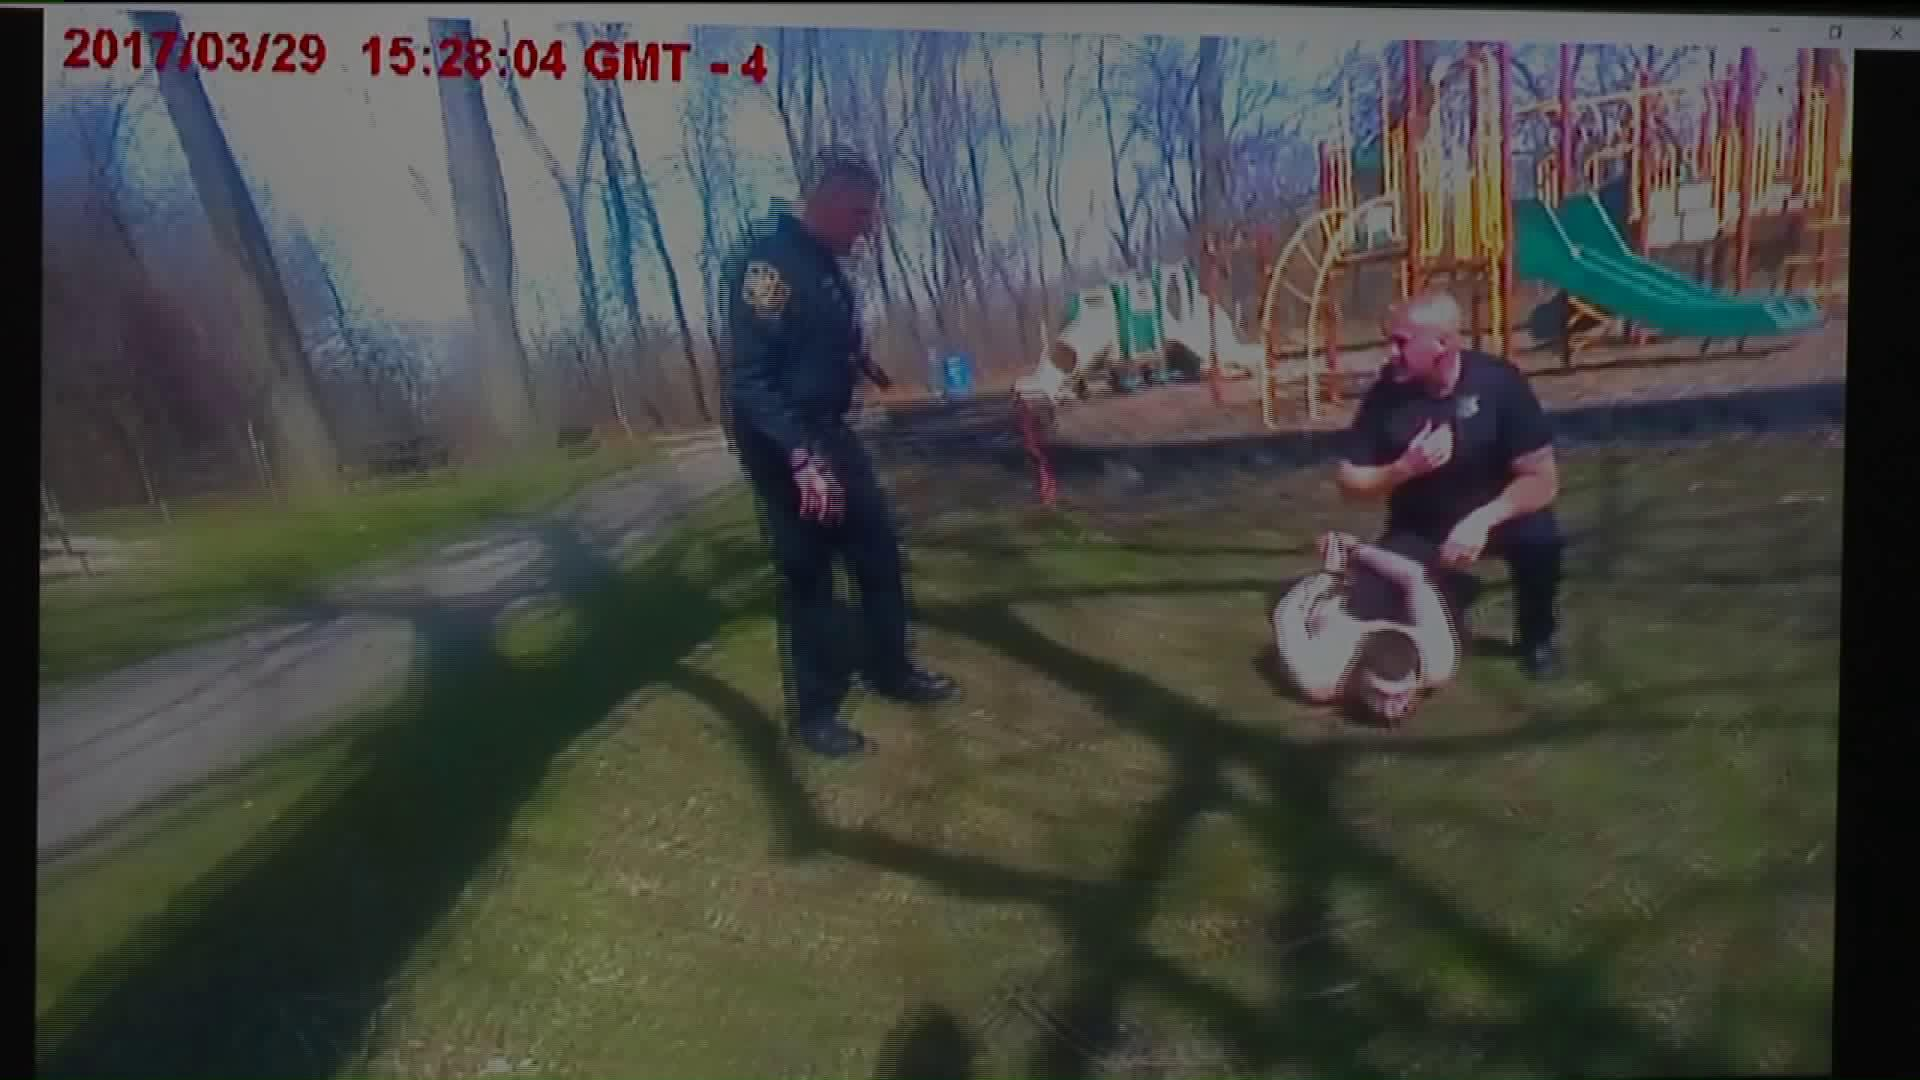 Police arrest naked man on swings at Ohio park - AOL News